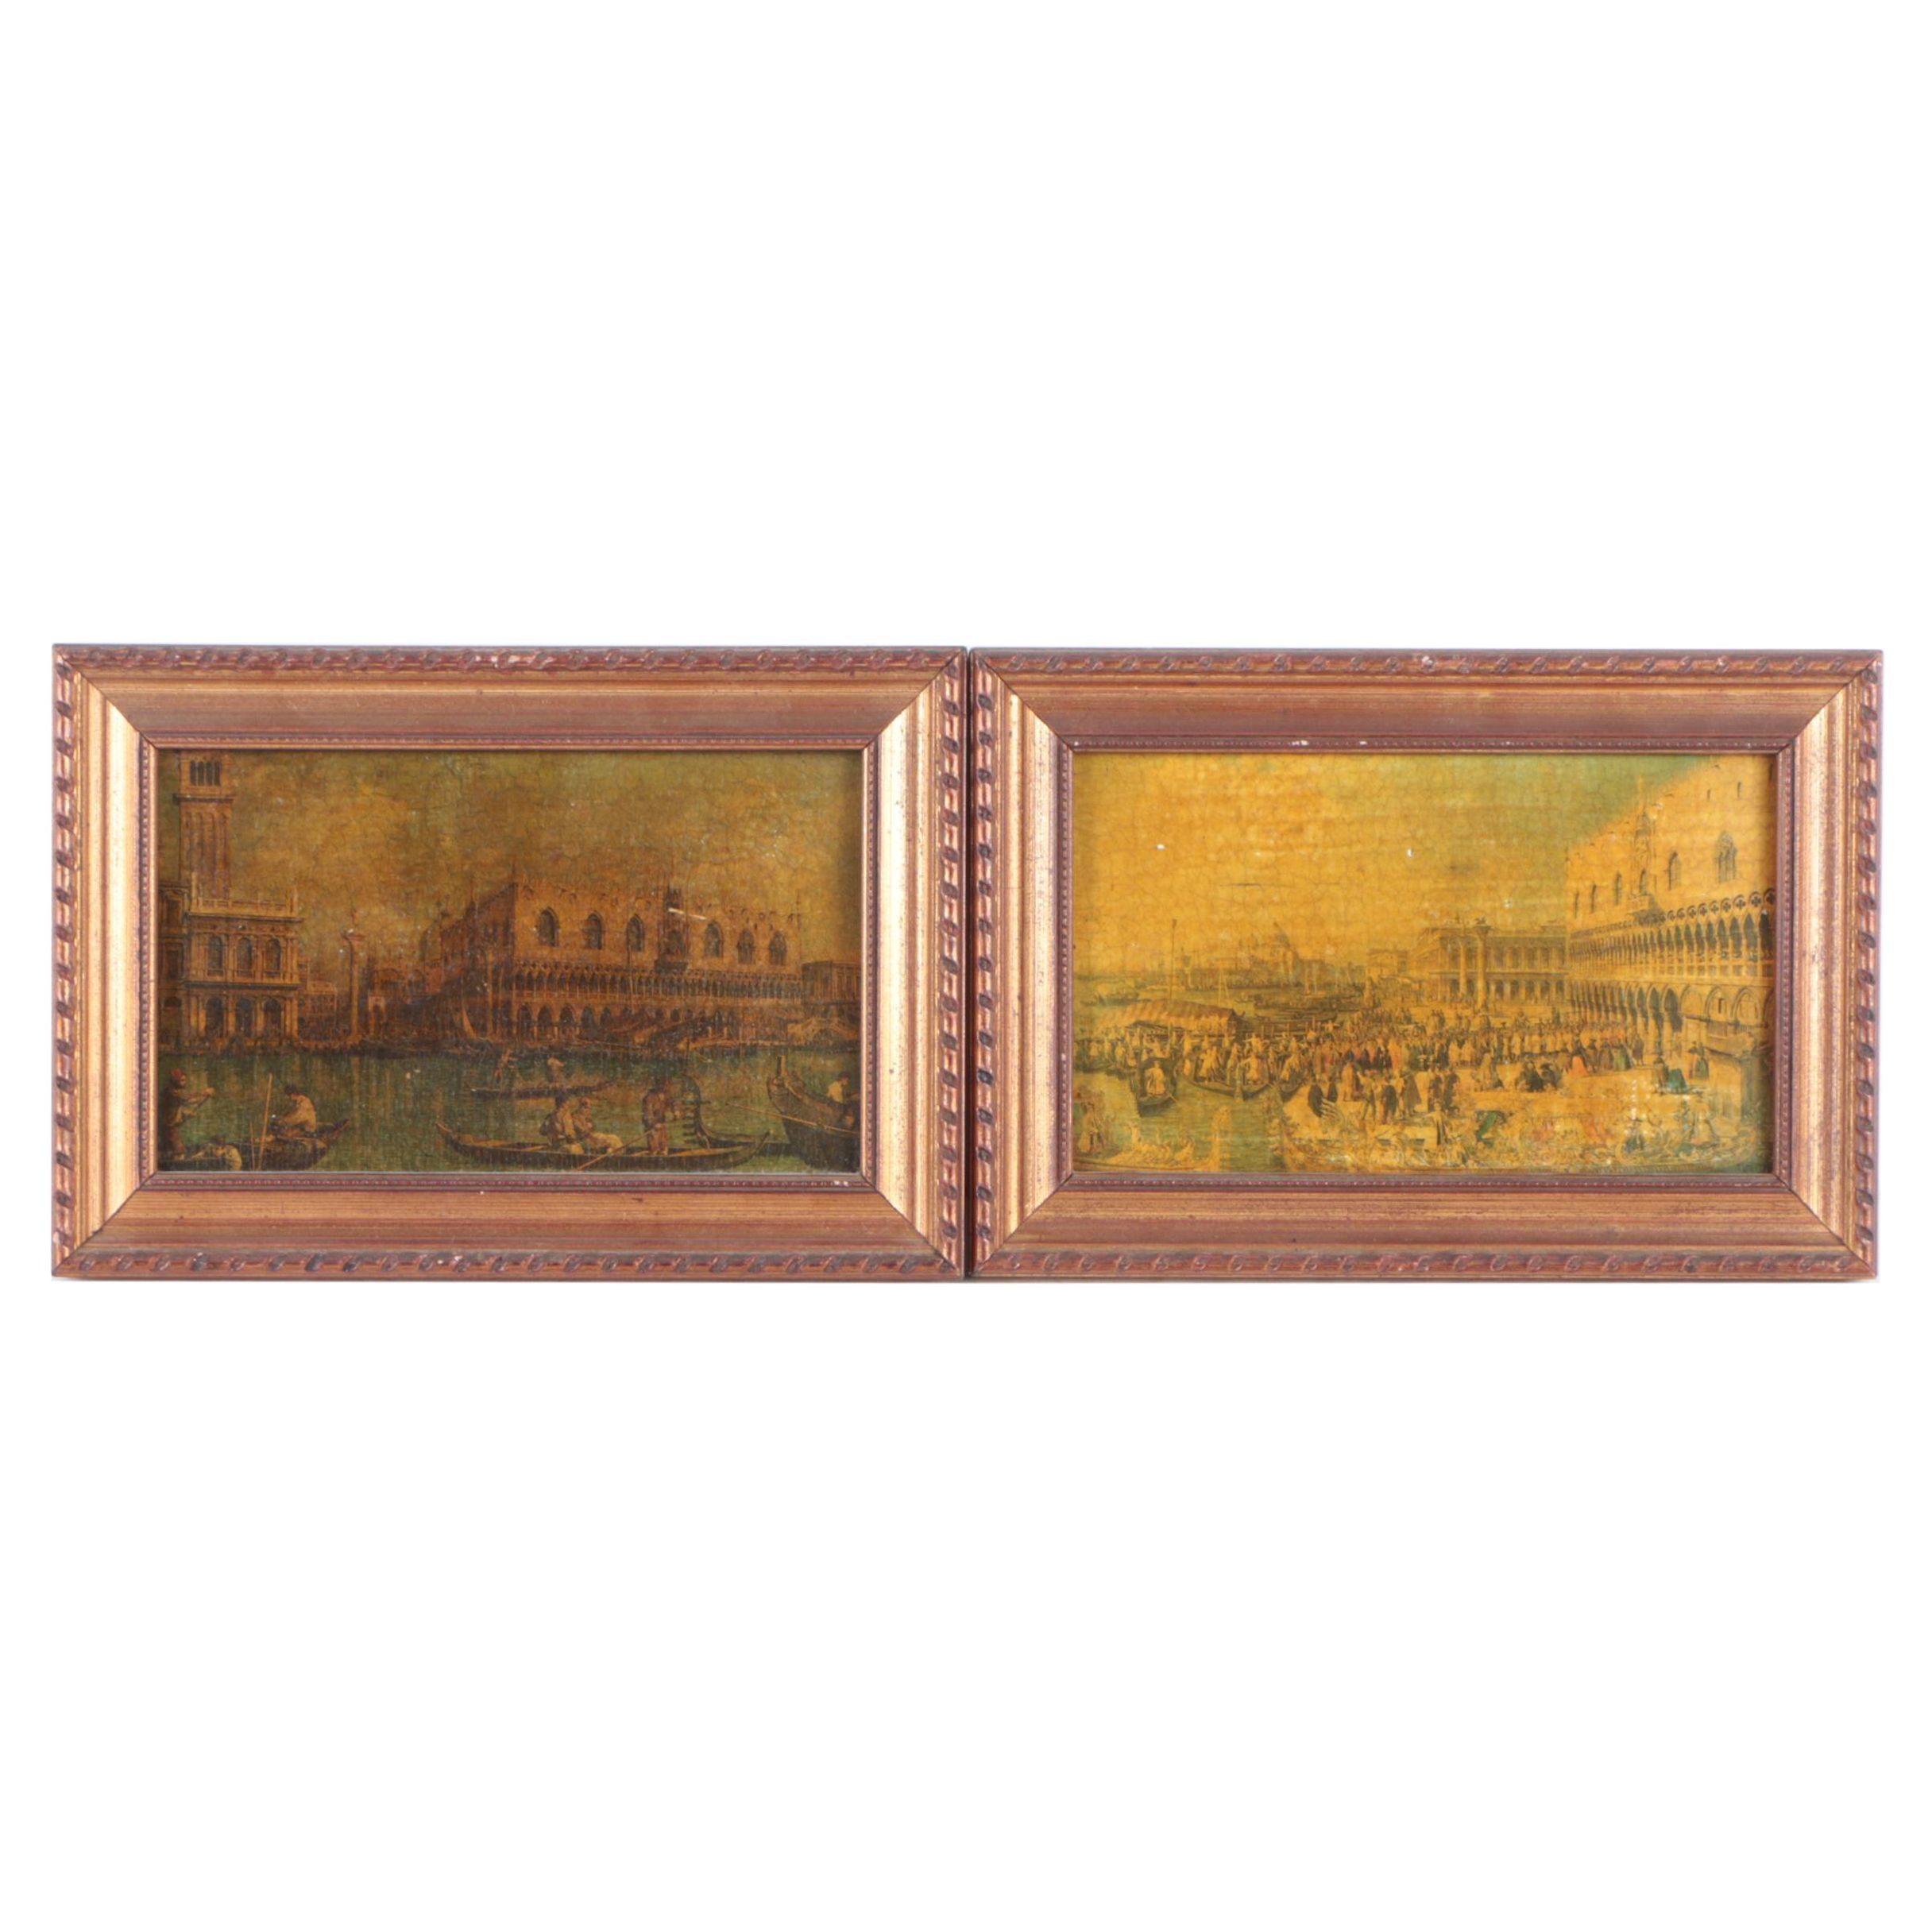 Offset Lithographs on Board Venetian City Scenes